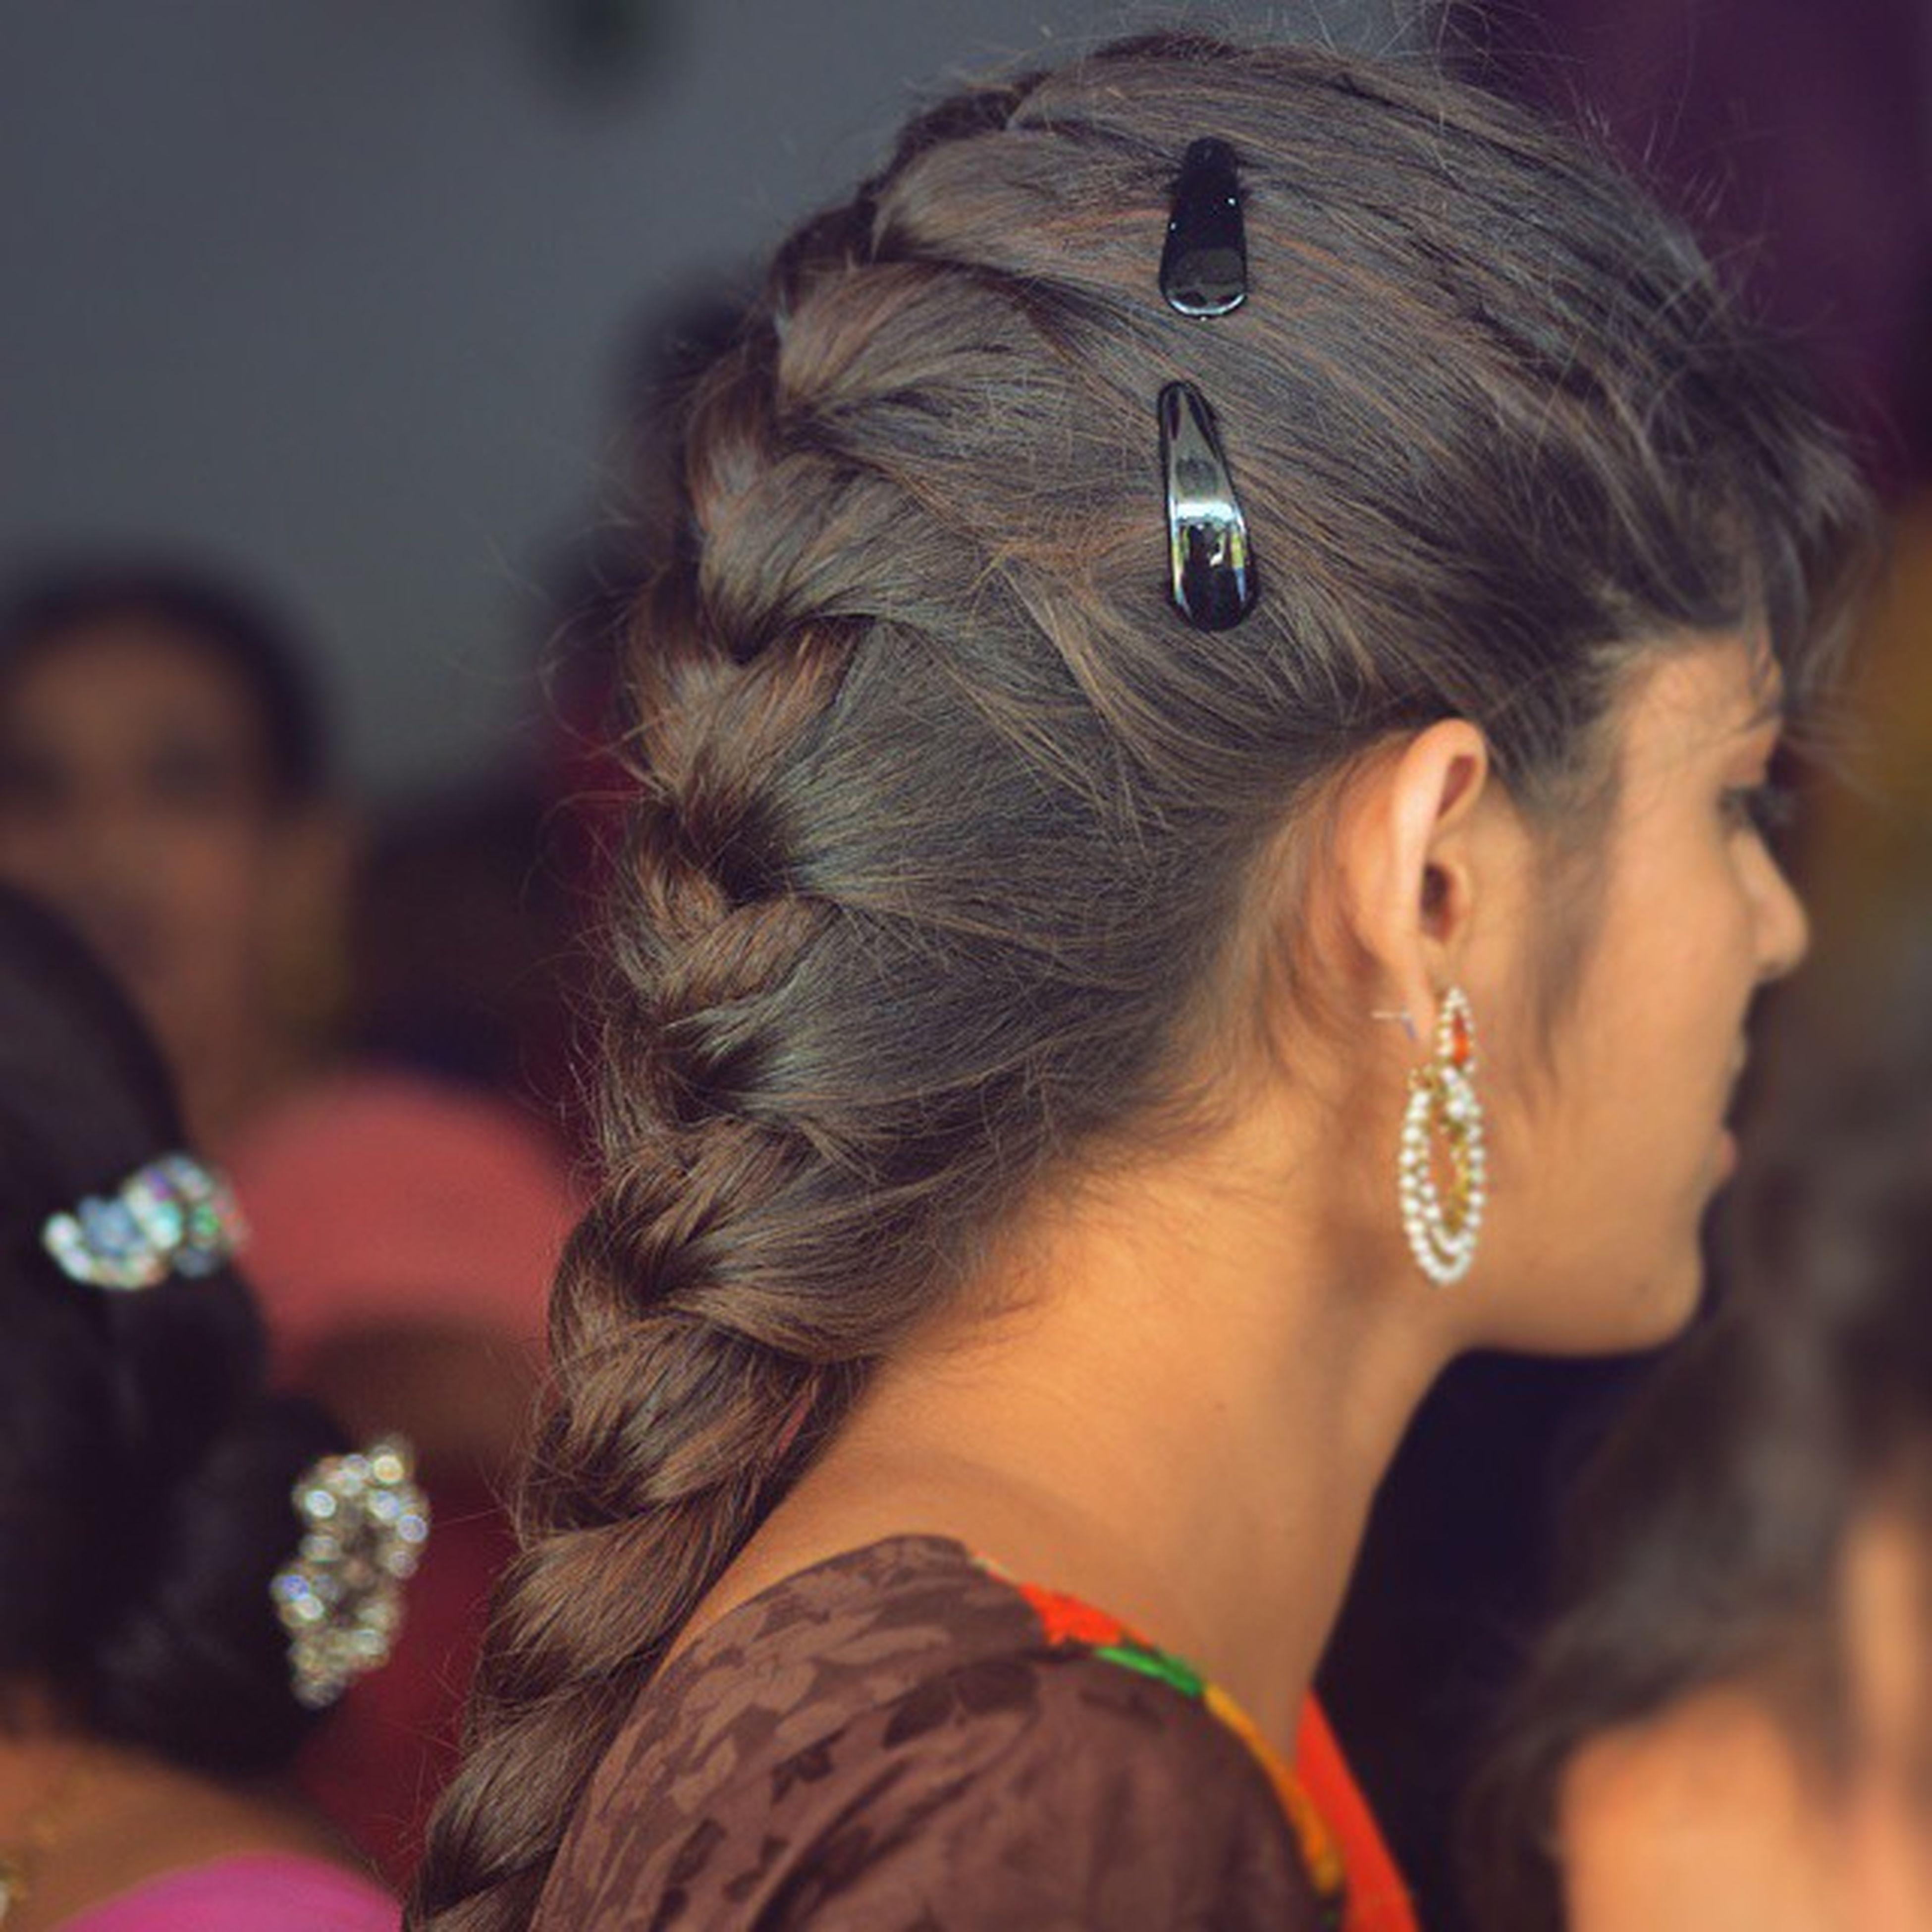 lifestyles, headshot, leisure activity, young adult, focus on foreground, young women, person, head and shoulders, holding, close-up, long hair, front view, portrait, looking at camera, human face, brown hair